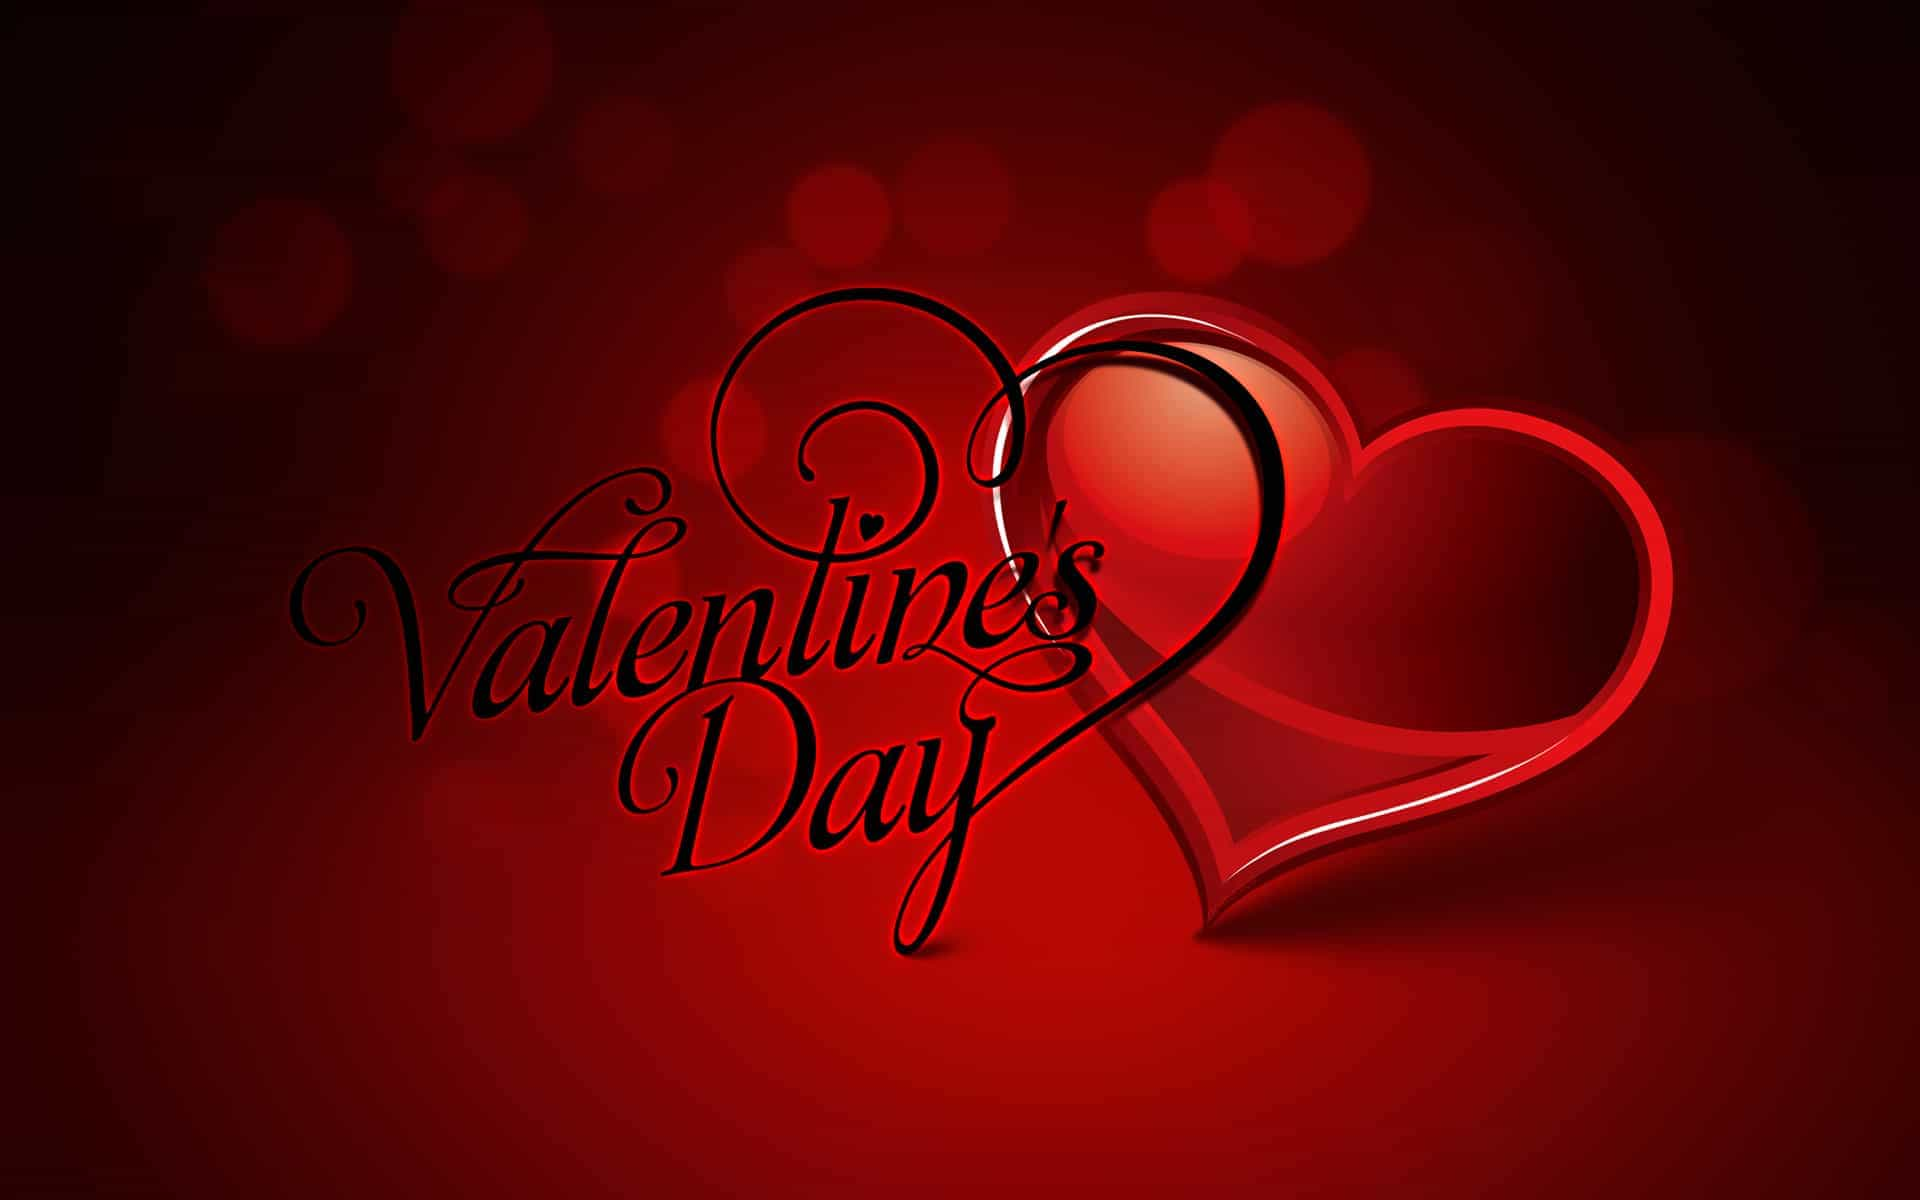 what is valentine day and why do we celebrate it?